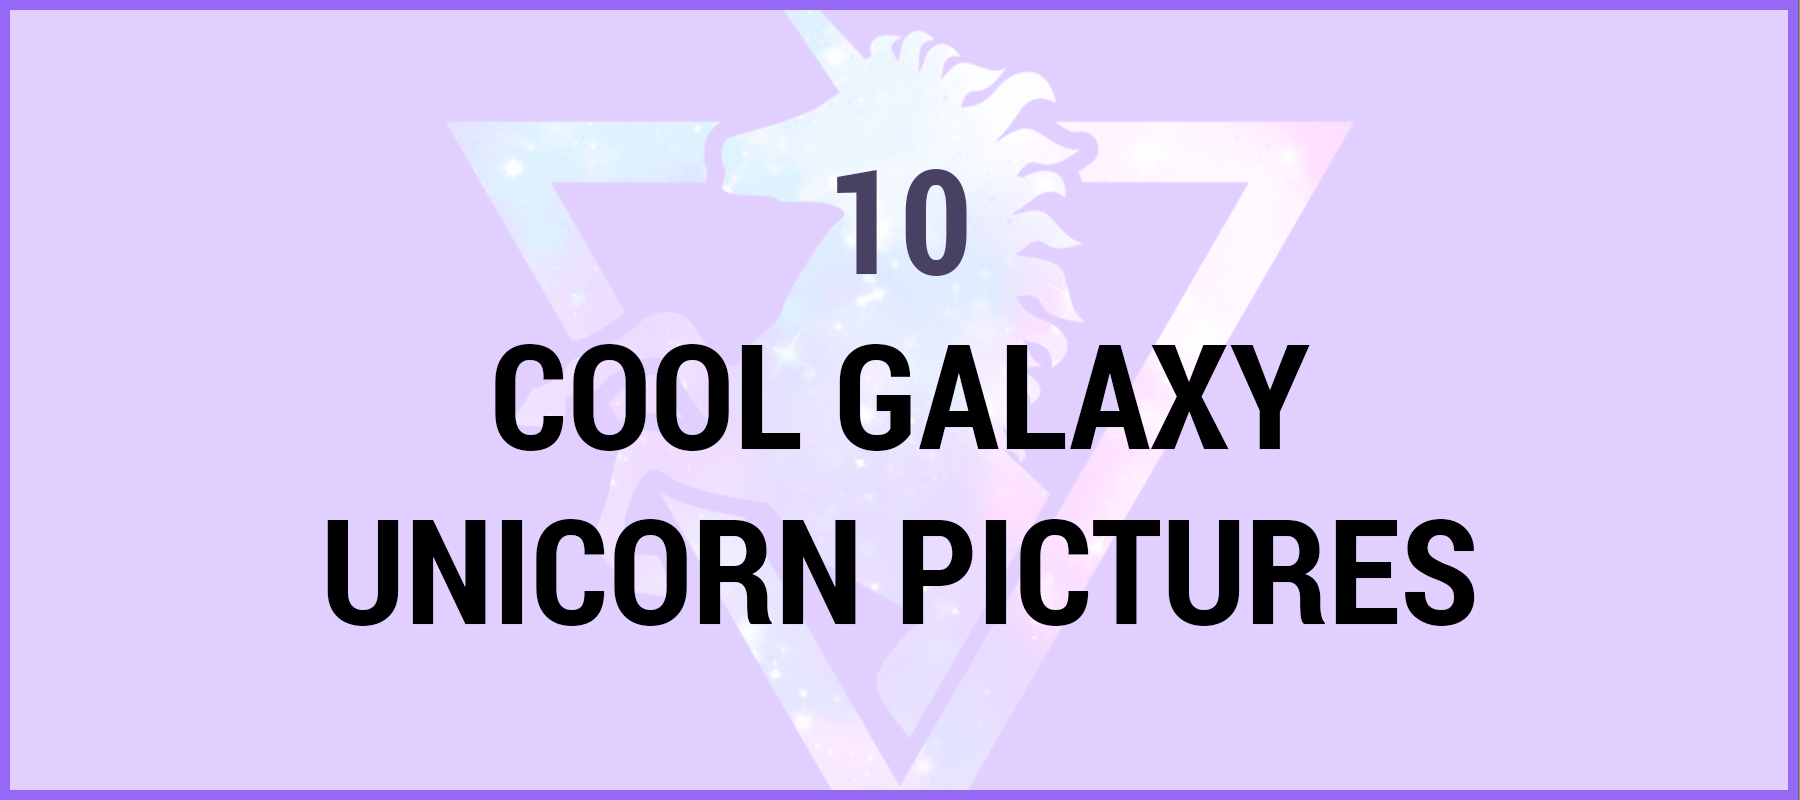 cool galaxy unicorn pictures